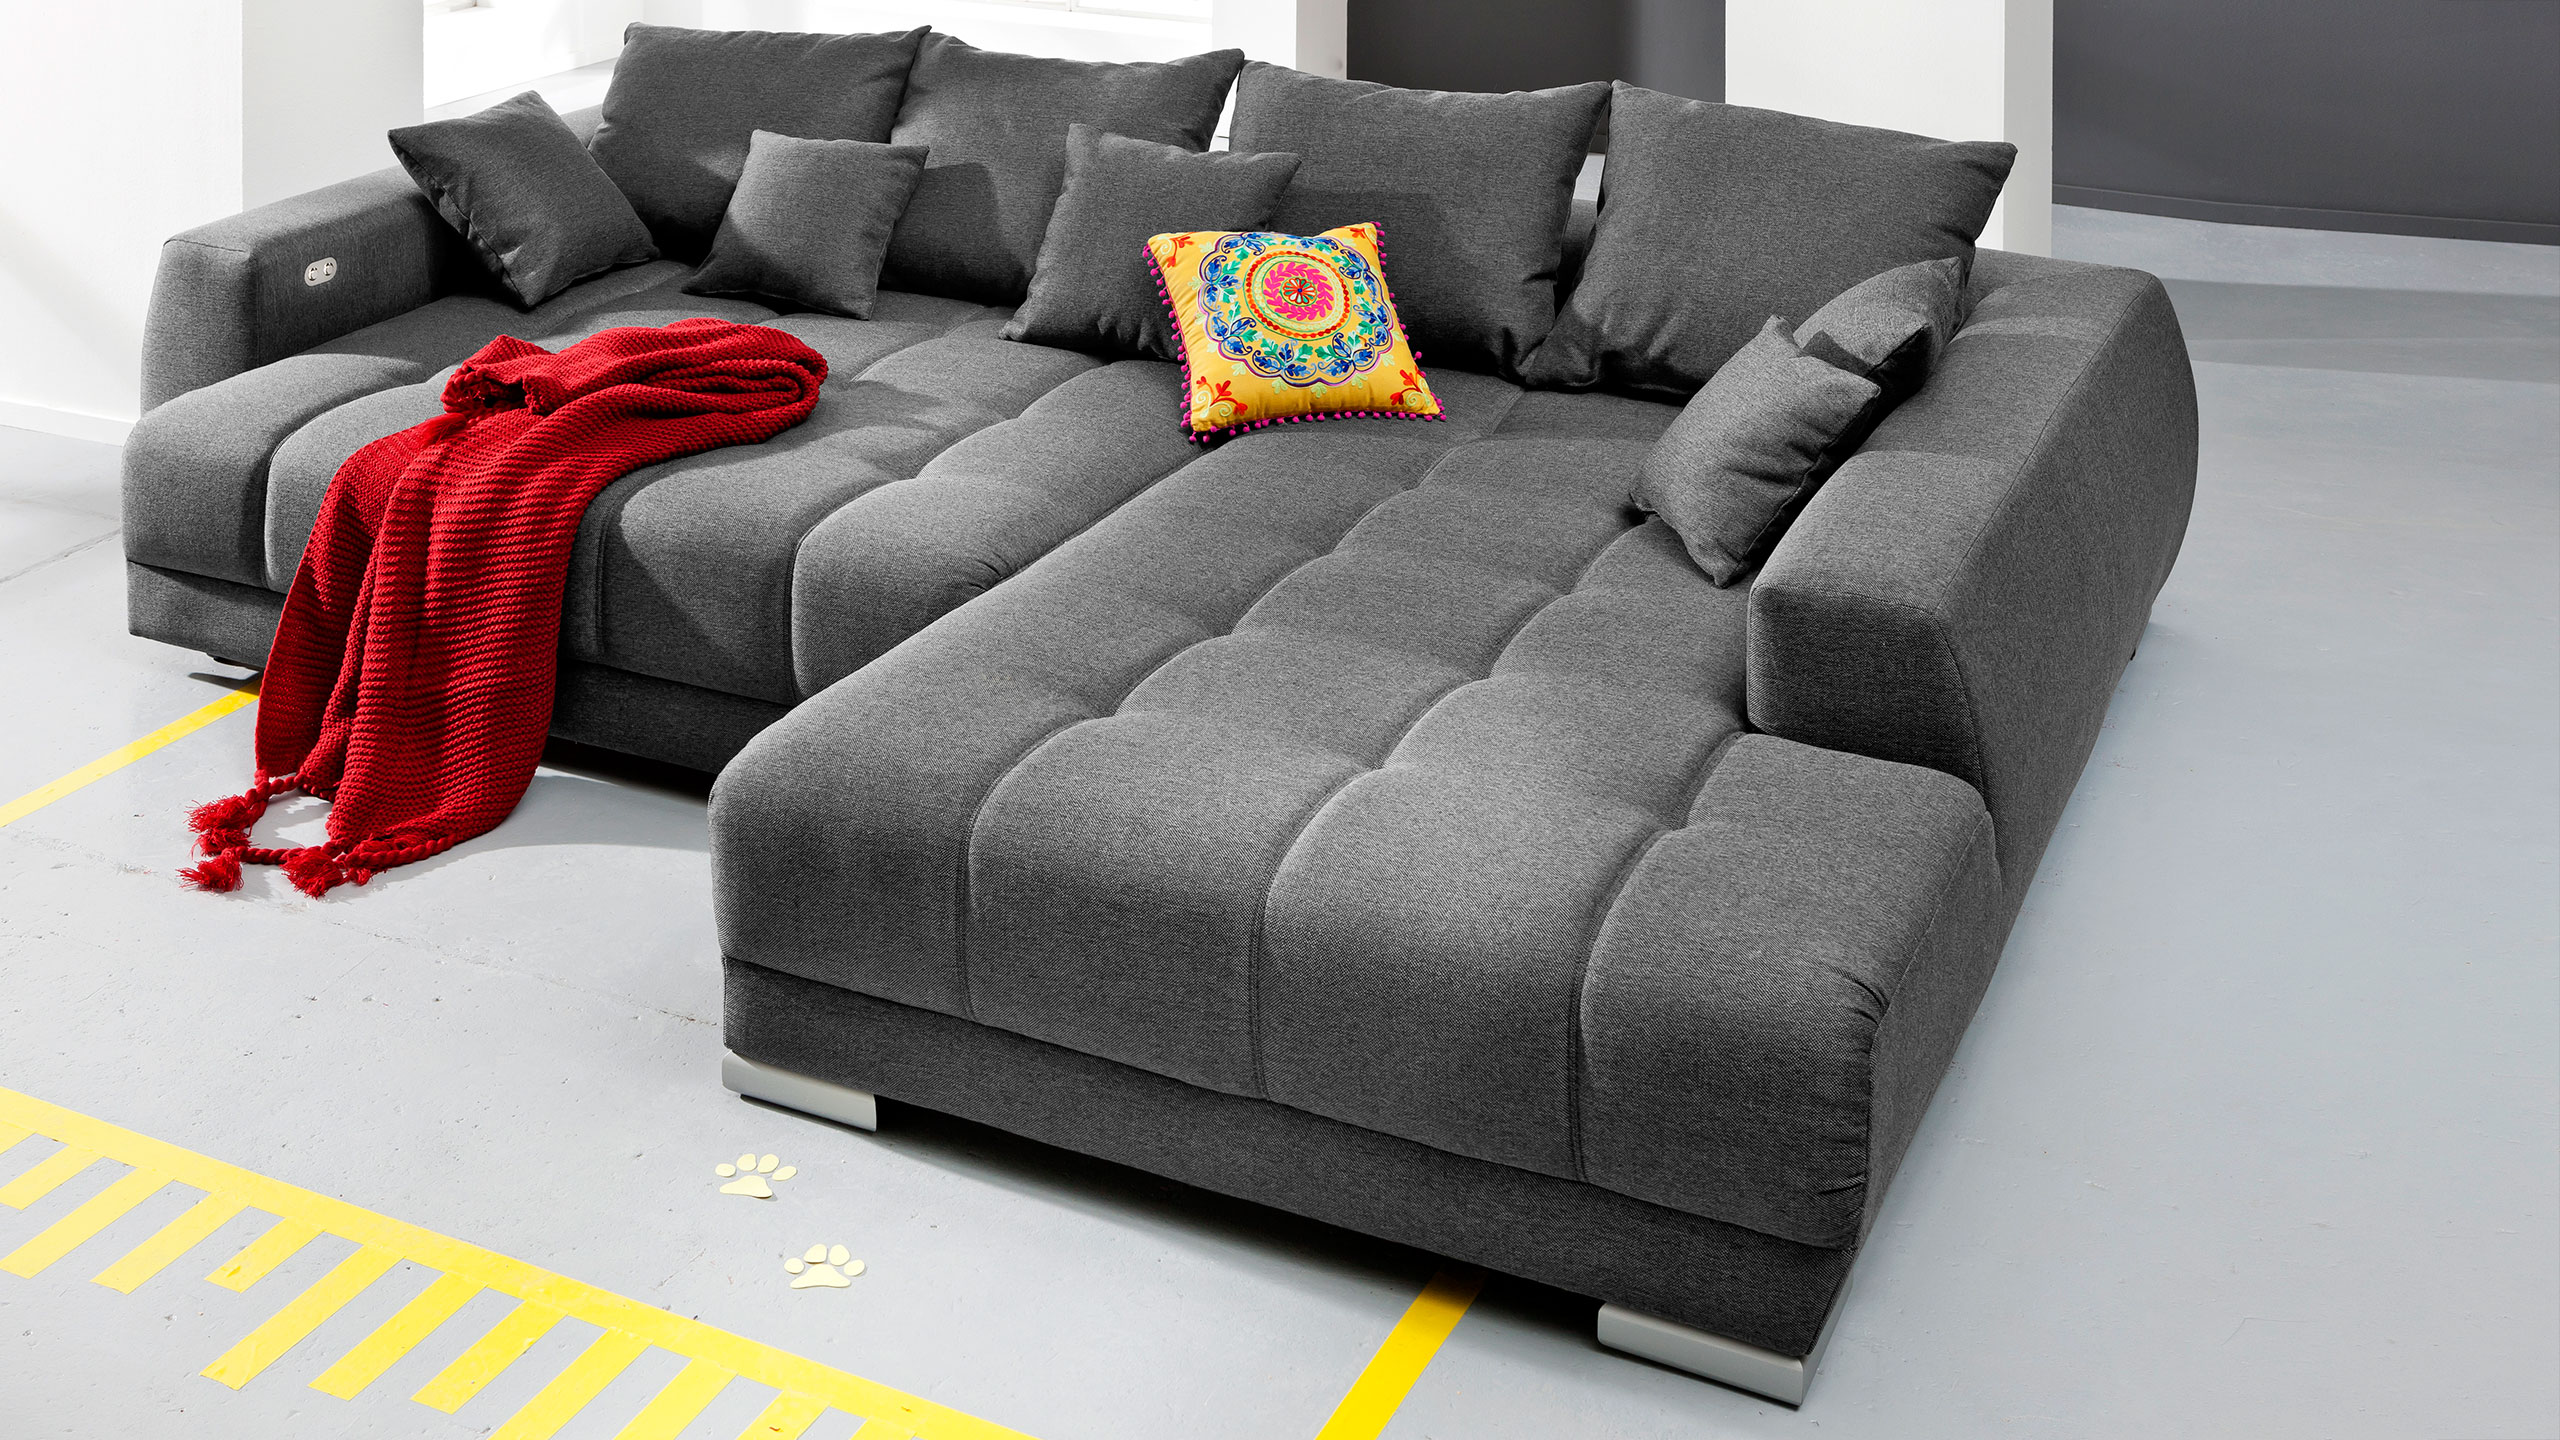 sofa tiefe sitzflche sofa breite sitzflche erstaunlich big sofa antik leder federkern xxl with. Black Bedroom Furniture Sets. Home Design Ideas